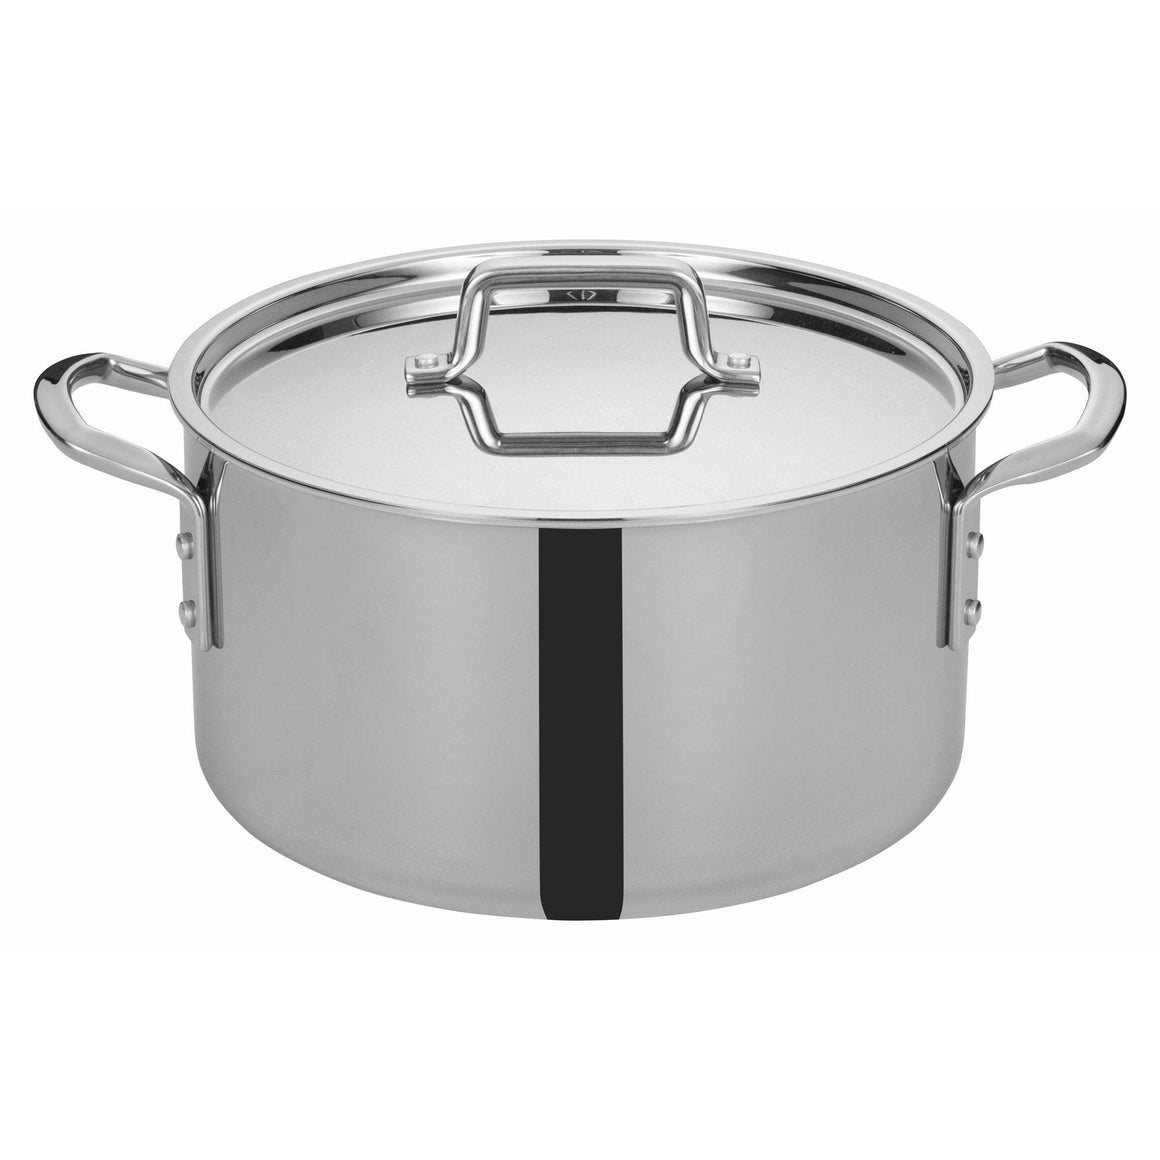 "Winco - TGSP-12 - TRI-GEN™ Tri-Ply Stock Pot w/Cover, 12Qt, 12""Dia - Cookware"